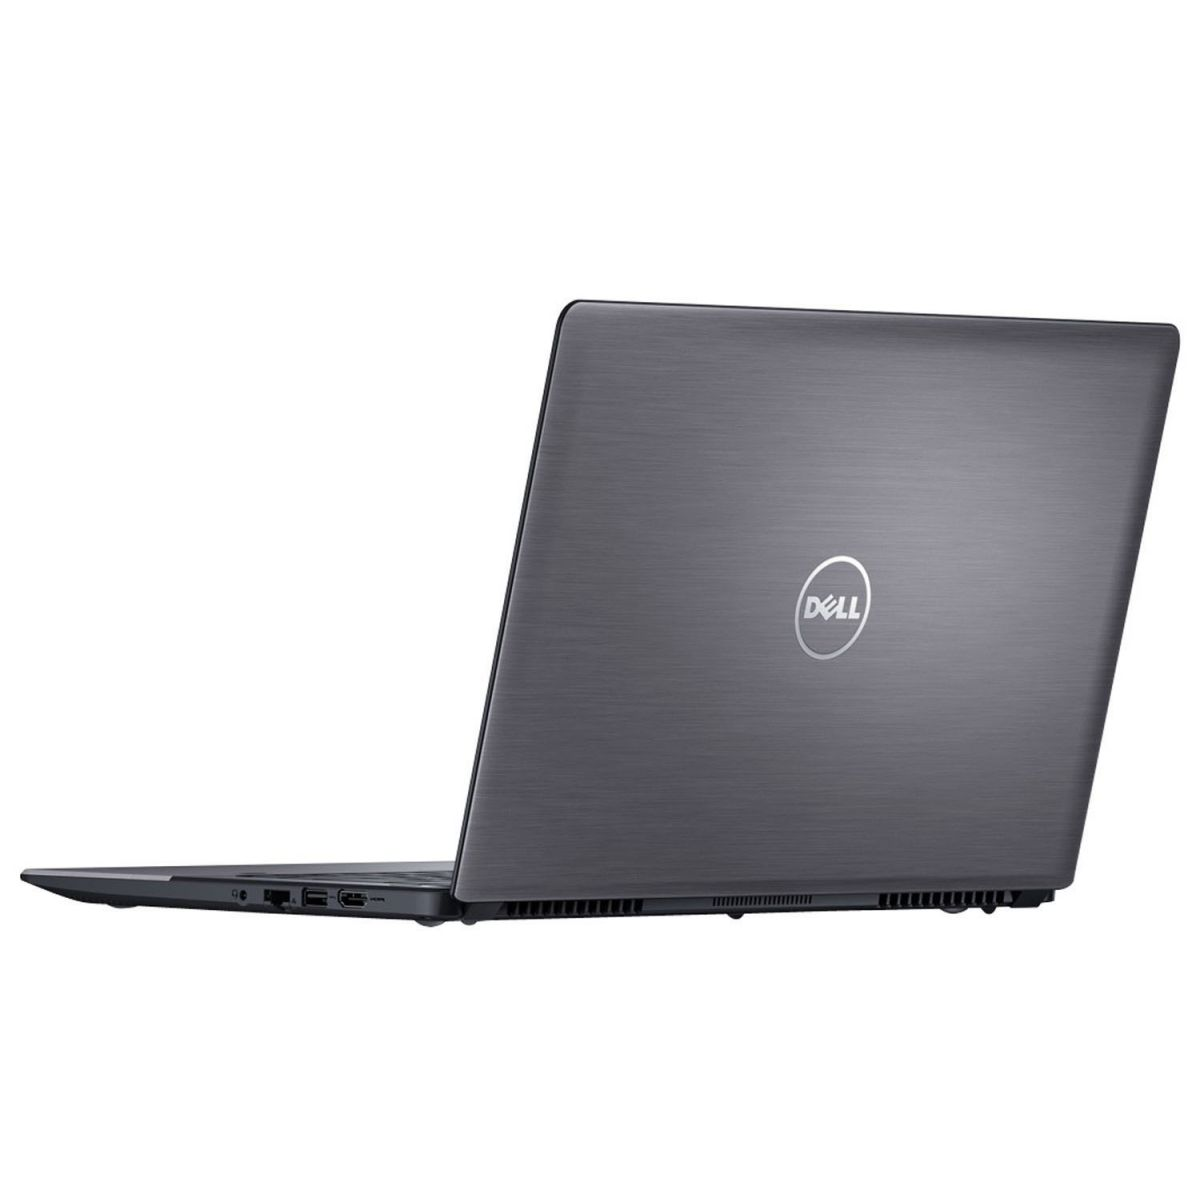 Notebook Vostro V14T-5470-A50 Intel Core i7 Memória 8GB HD 500GB Video Nvidia GT740M 2GB DDR3 LED 14 Windows 8 - Dell